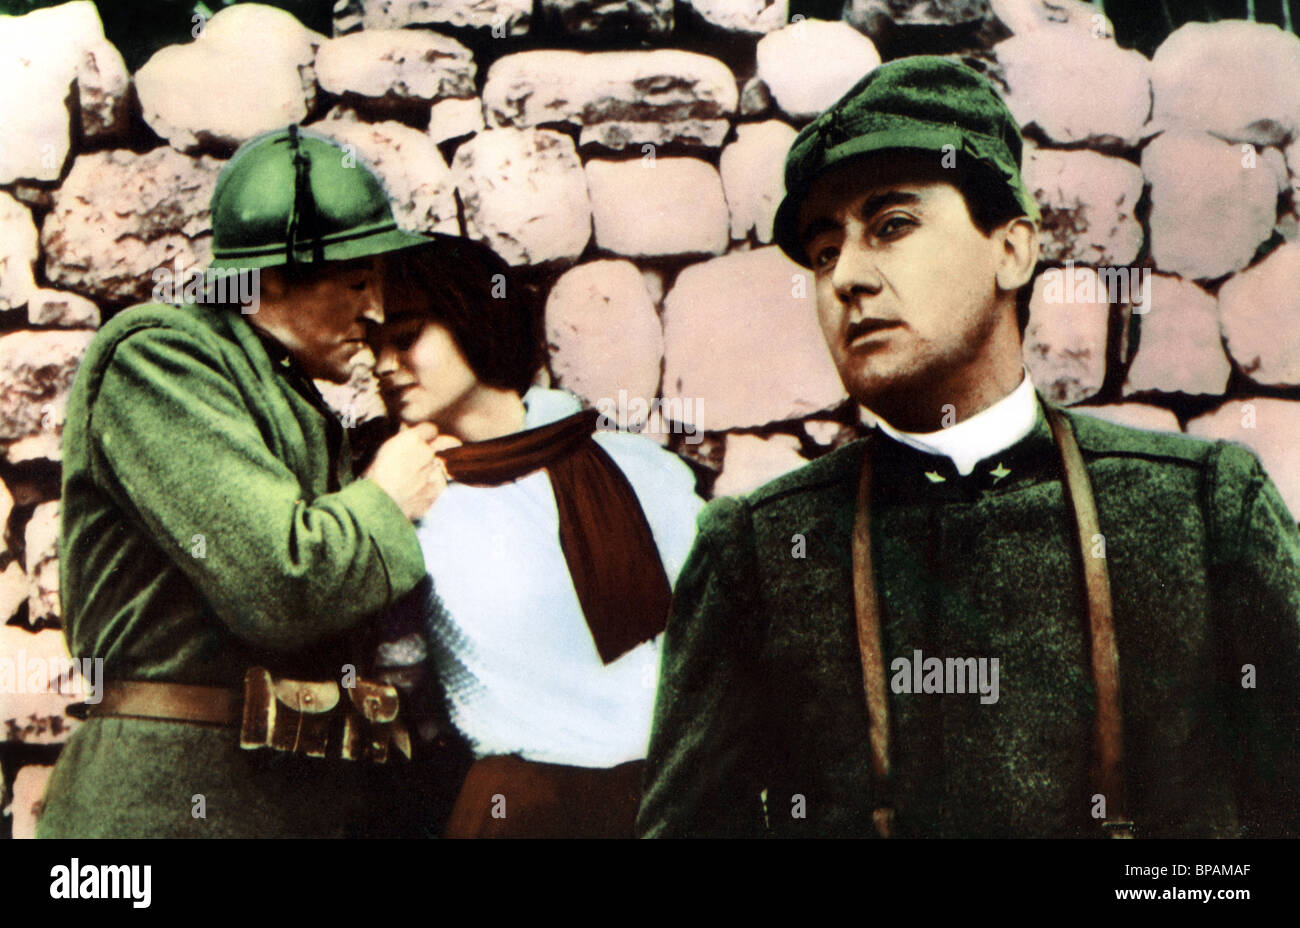 SCENE WITH ALBERTO SORDI THE GREAT WAR; LA GRANDE GUERRA (1959) - Stock Image